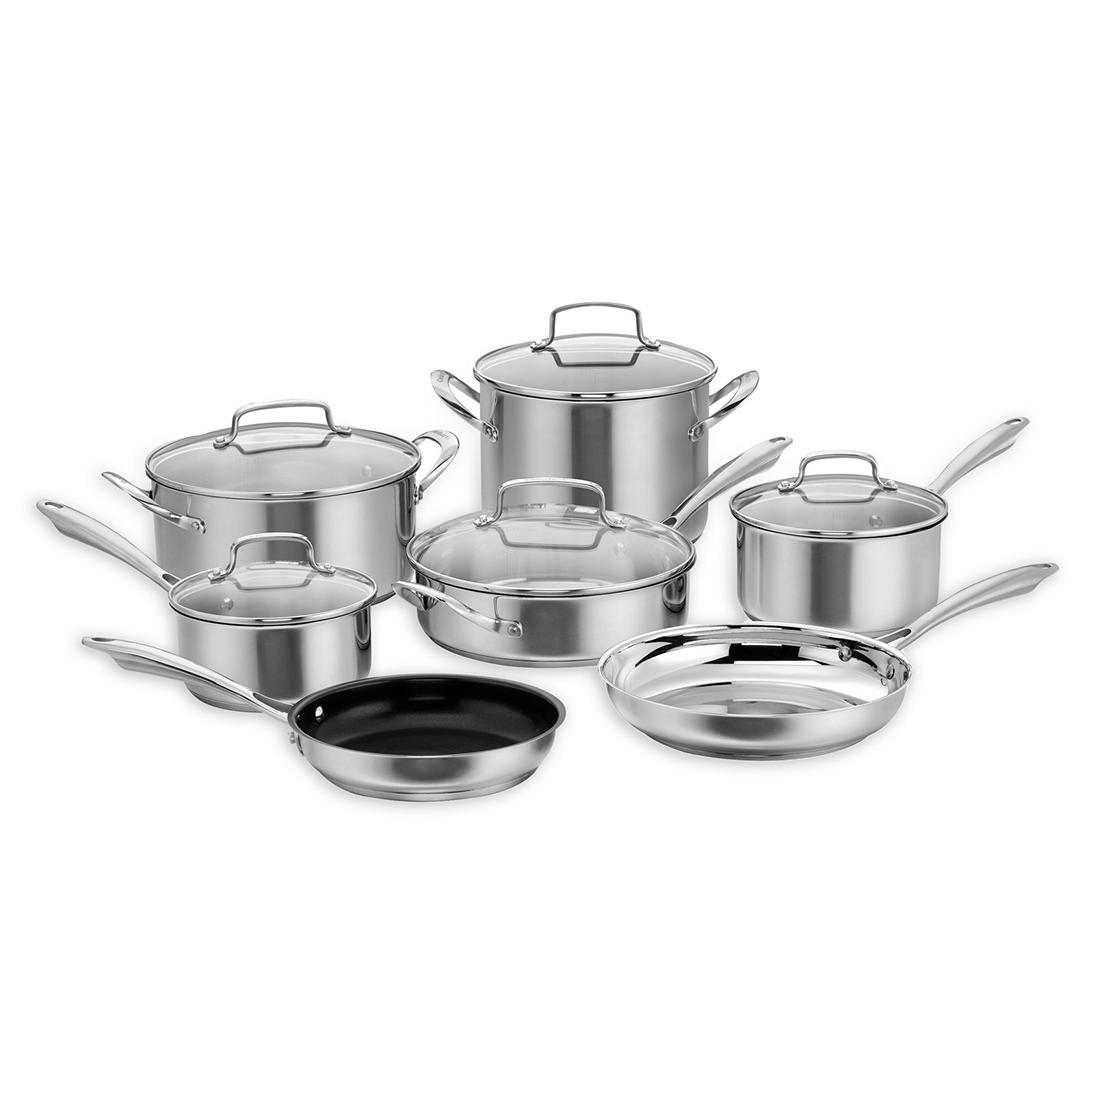 Cuisinart Professional 12 Pc Stainless Cookware Set